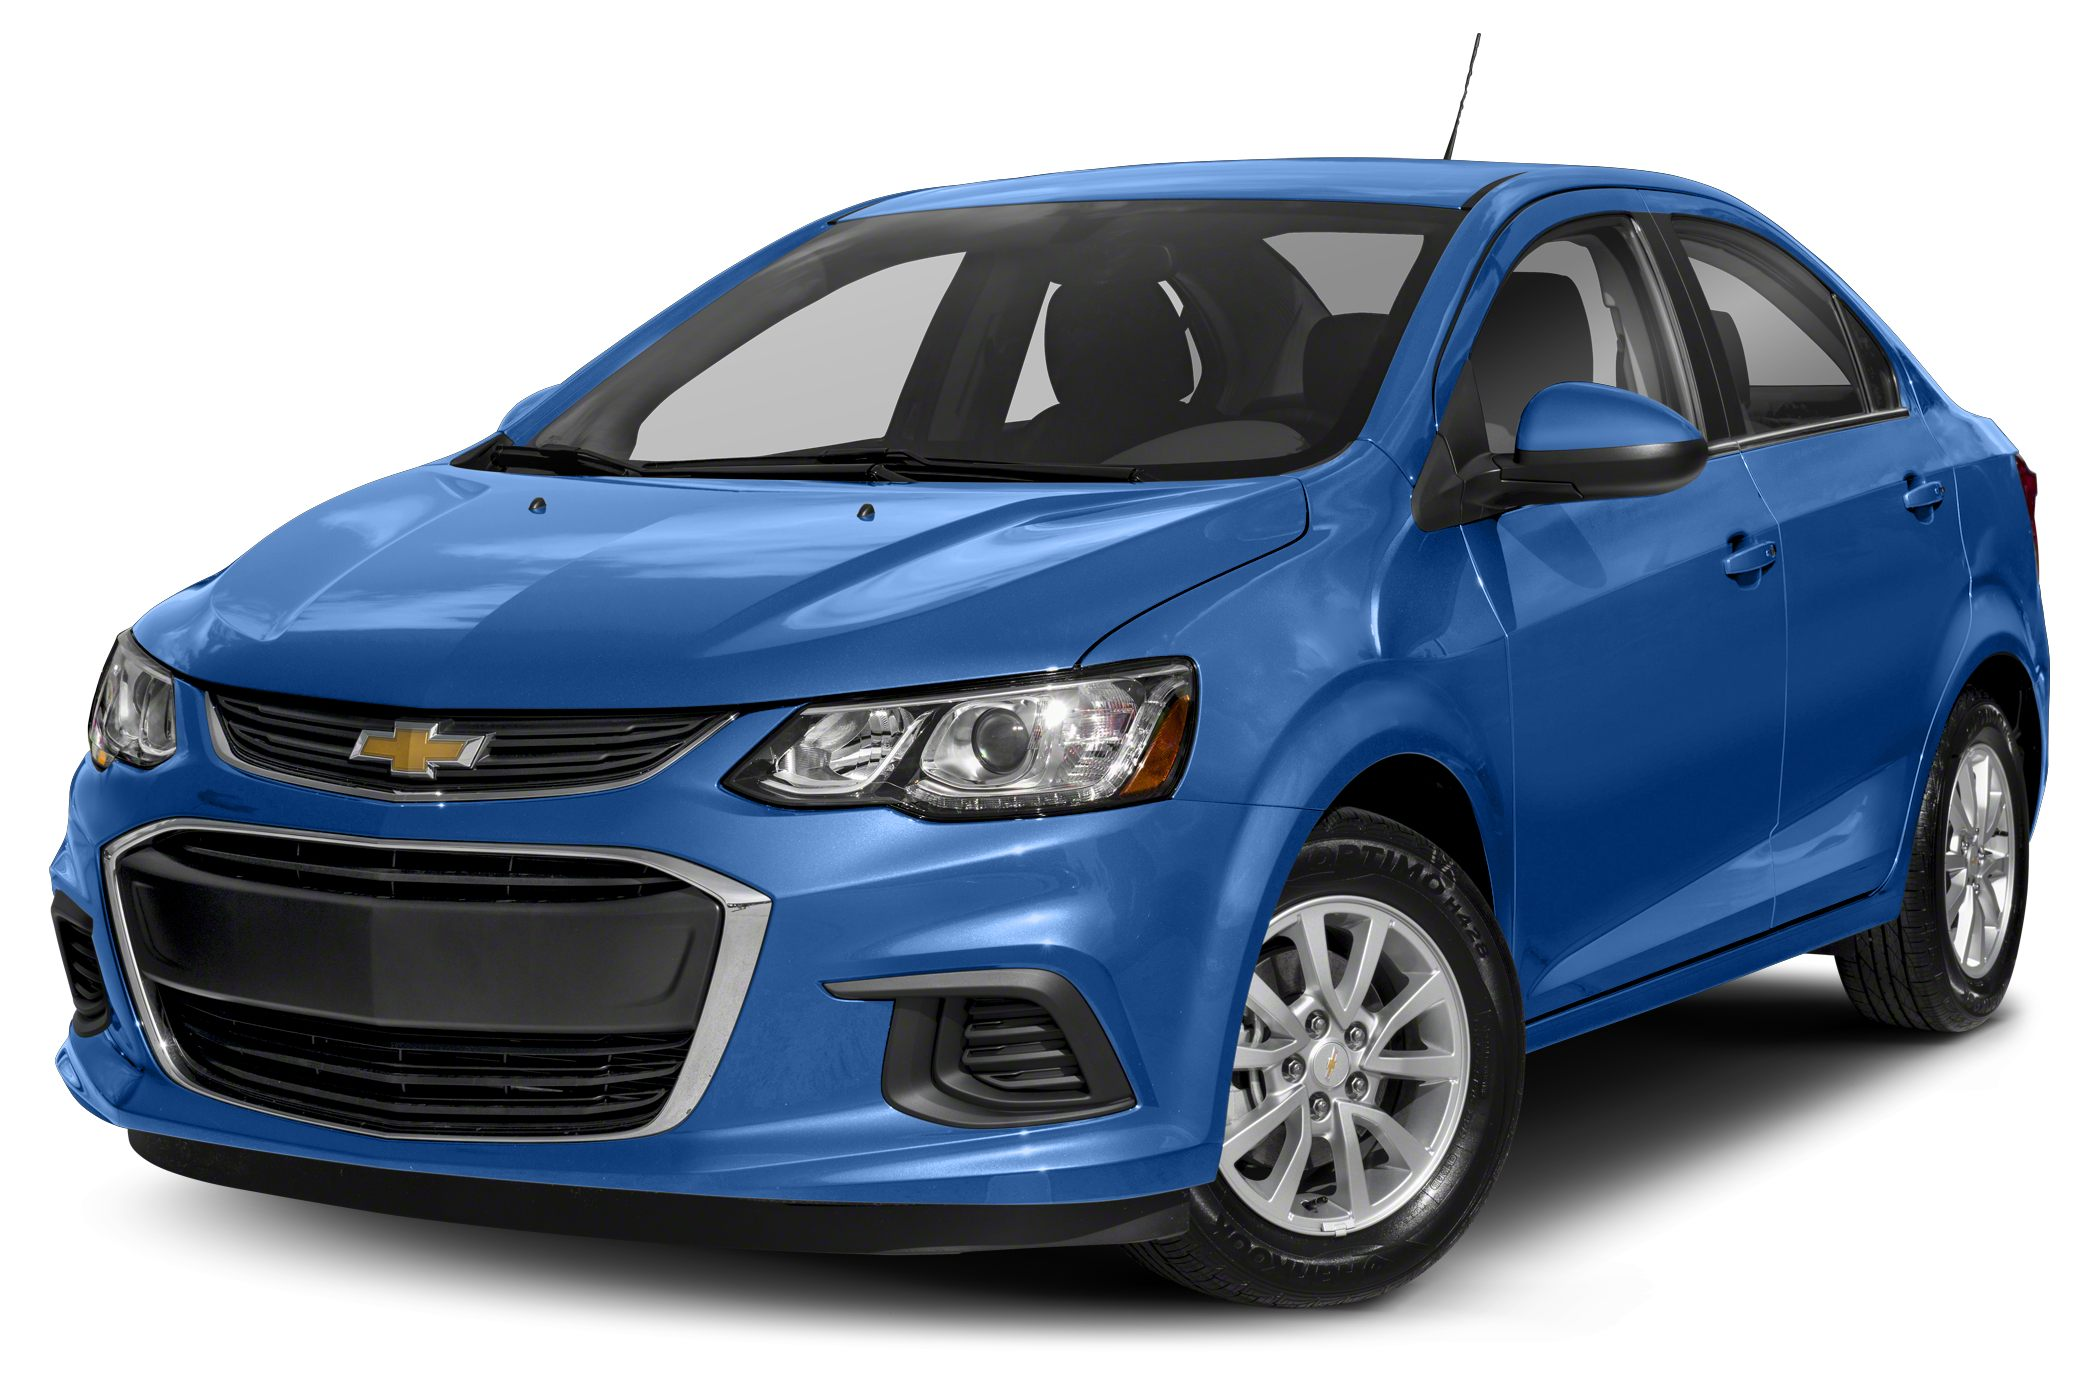 2017 Chevrolet Sonic LT The Our Cost Price reflects all applicable manufacturer rebates and privat